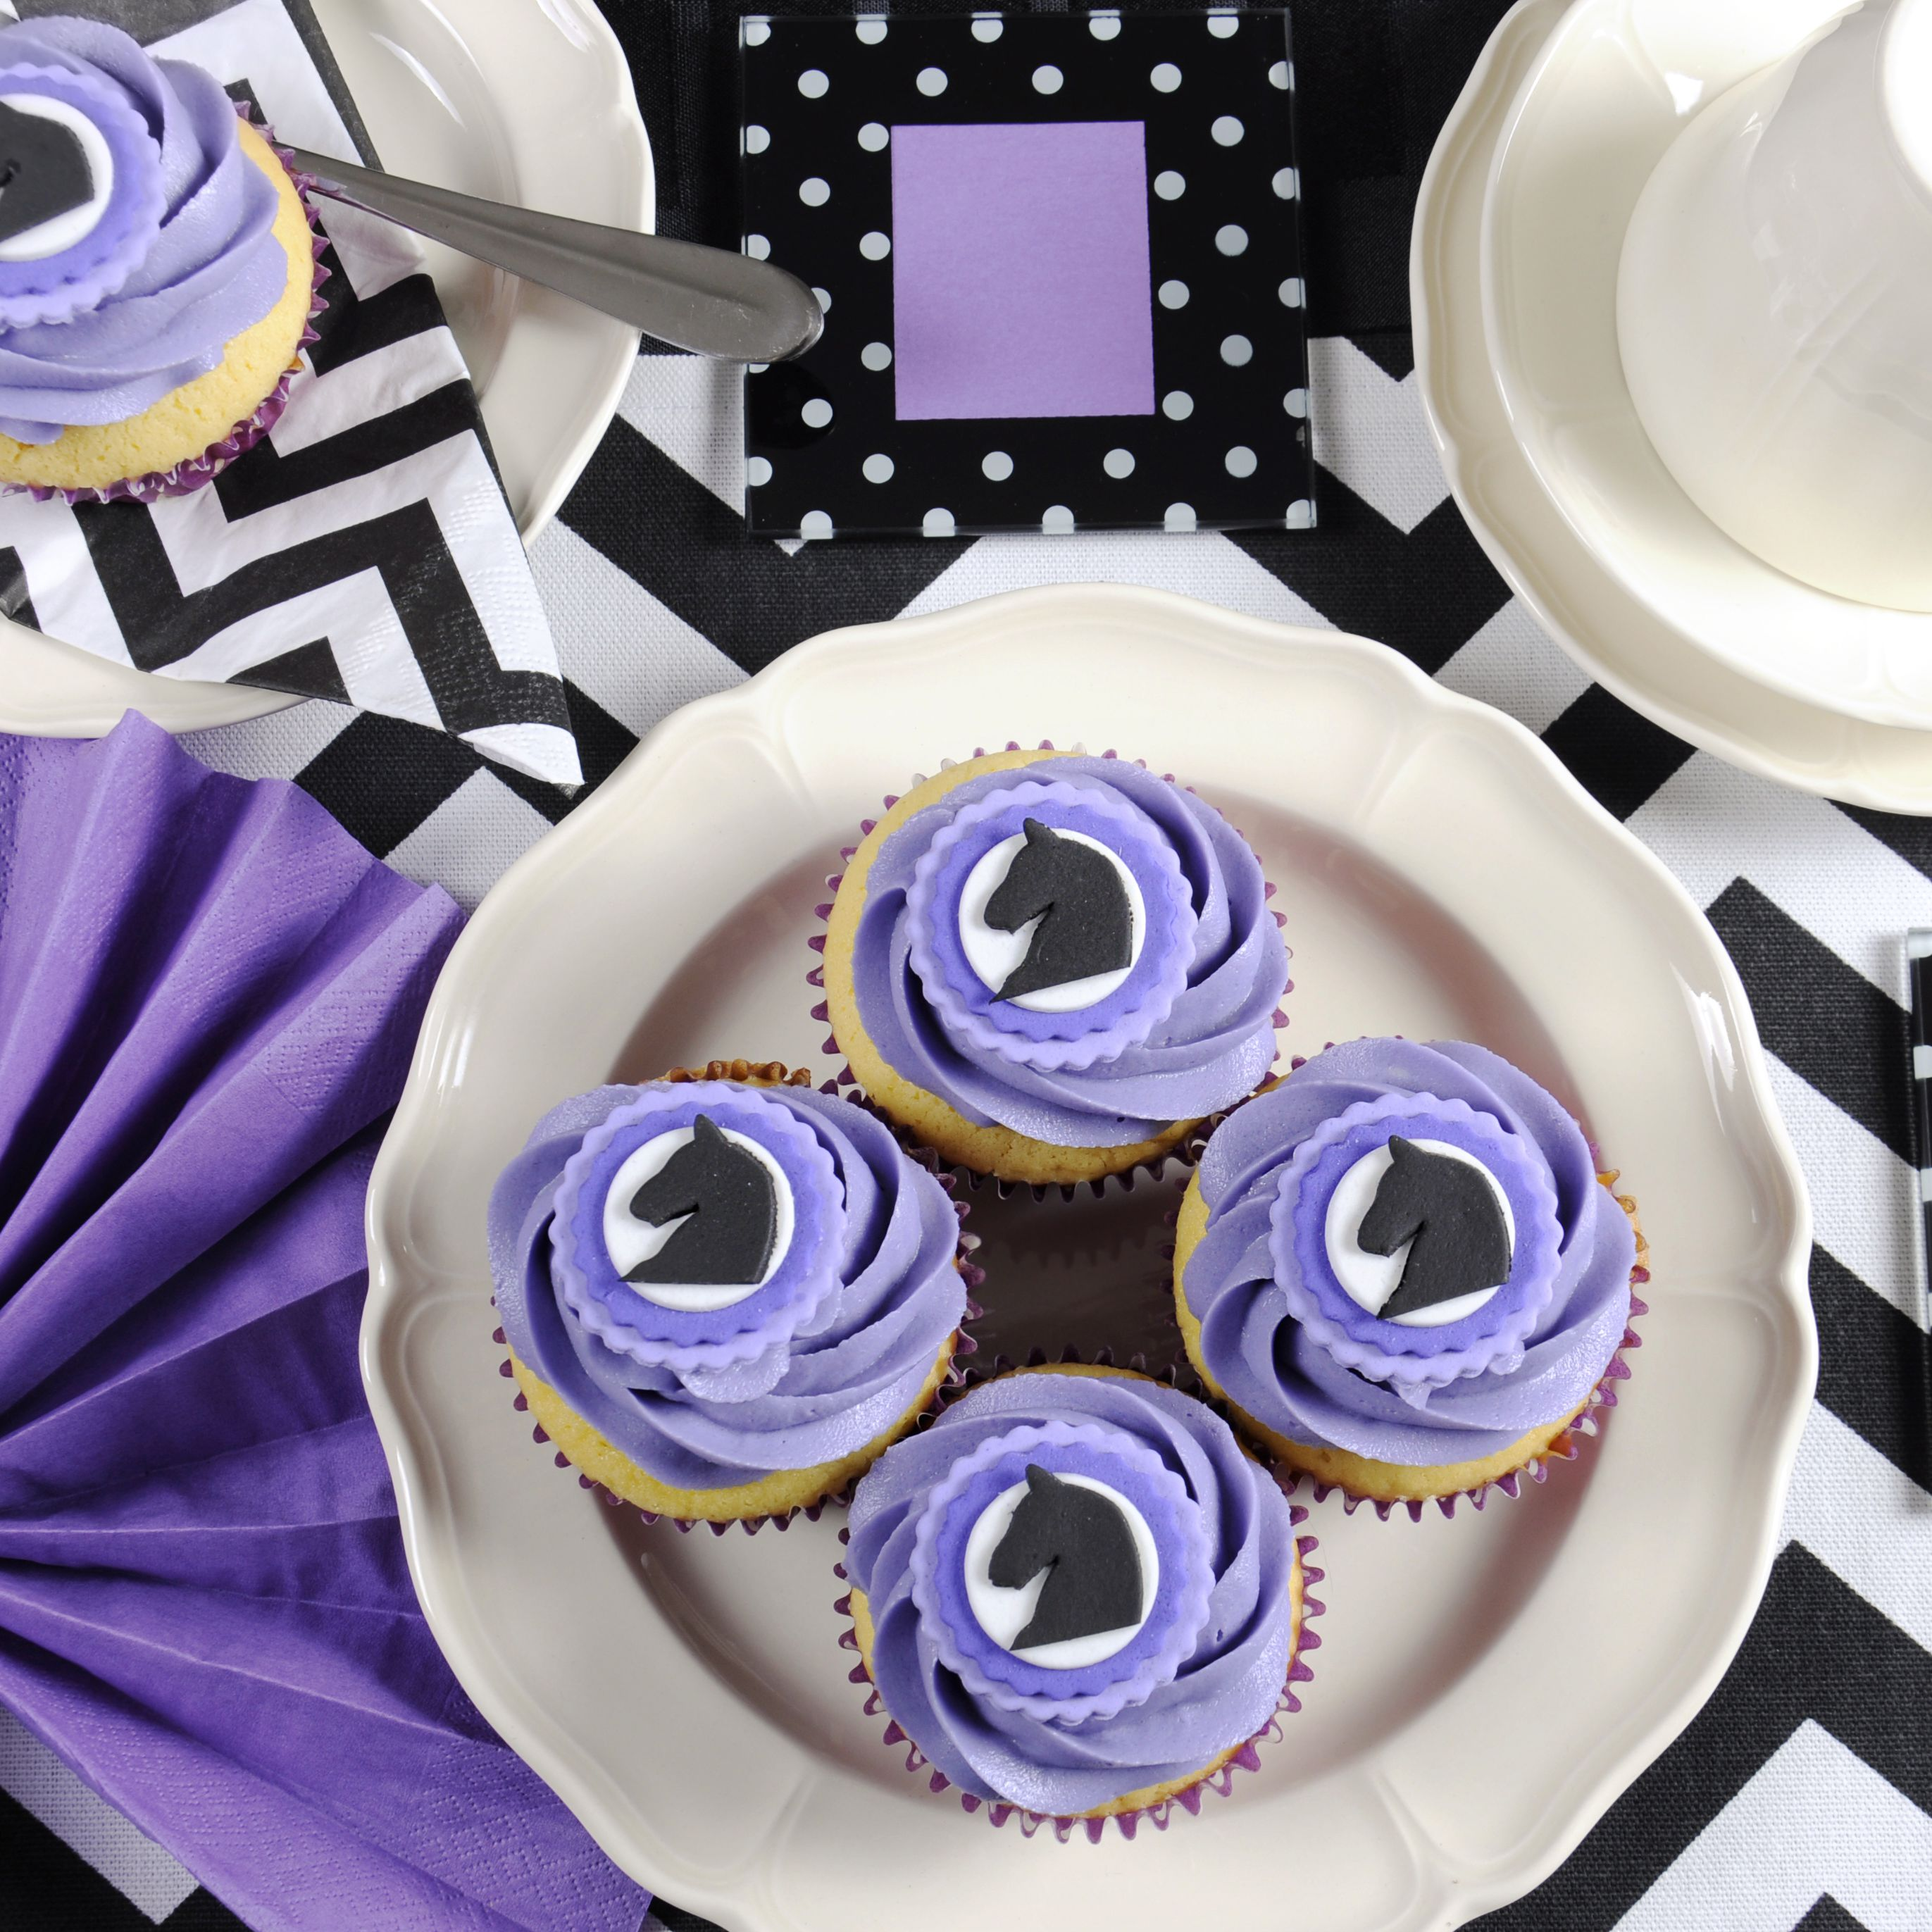 my little pony cake decorating ideas.htm fun kentucky derby party games and food  fun kentucky derby party games and food